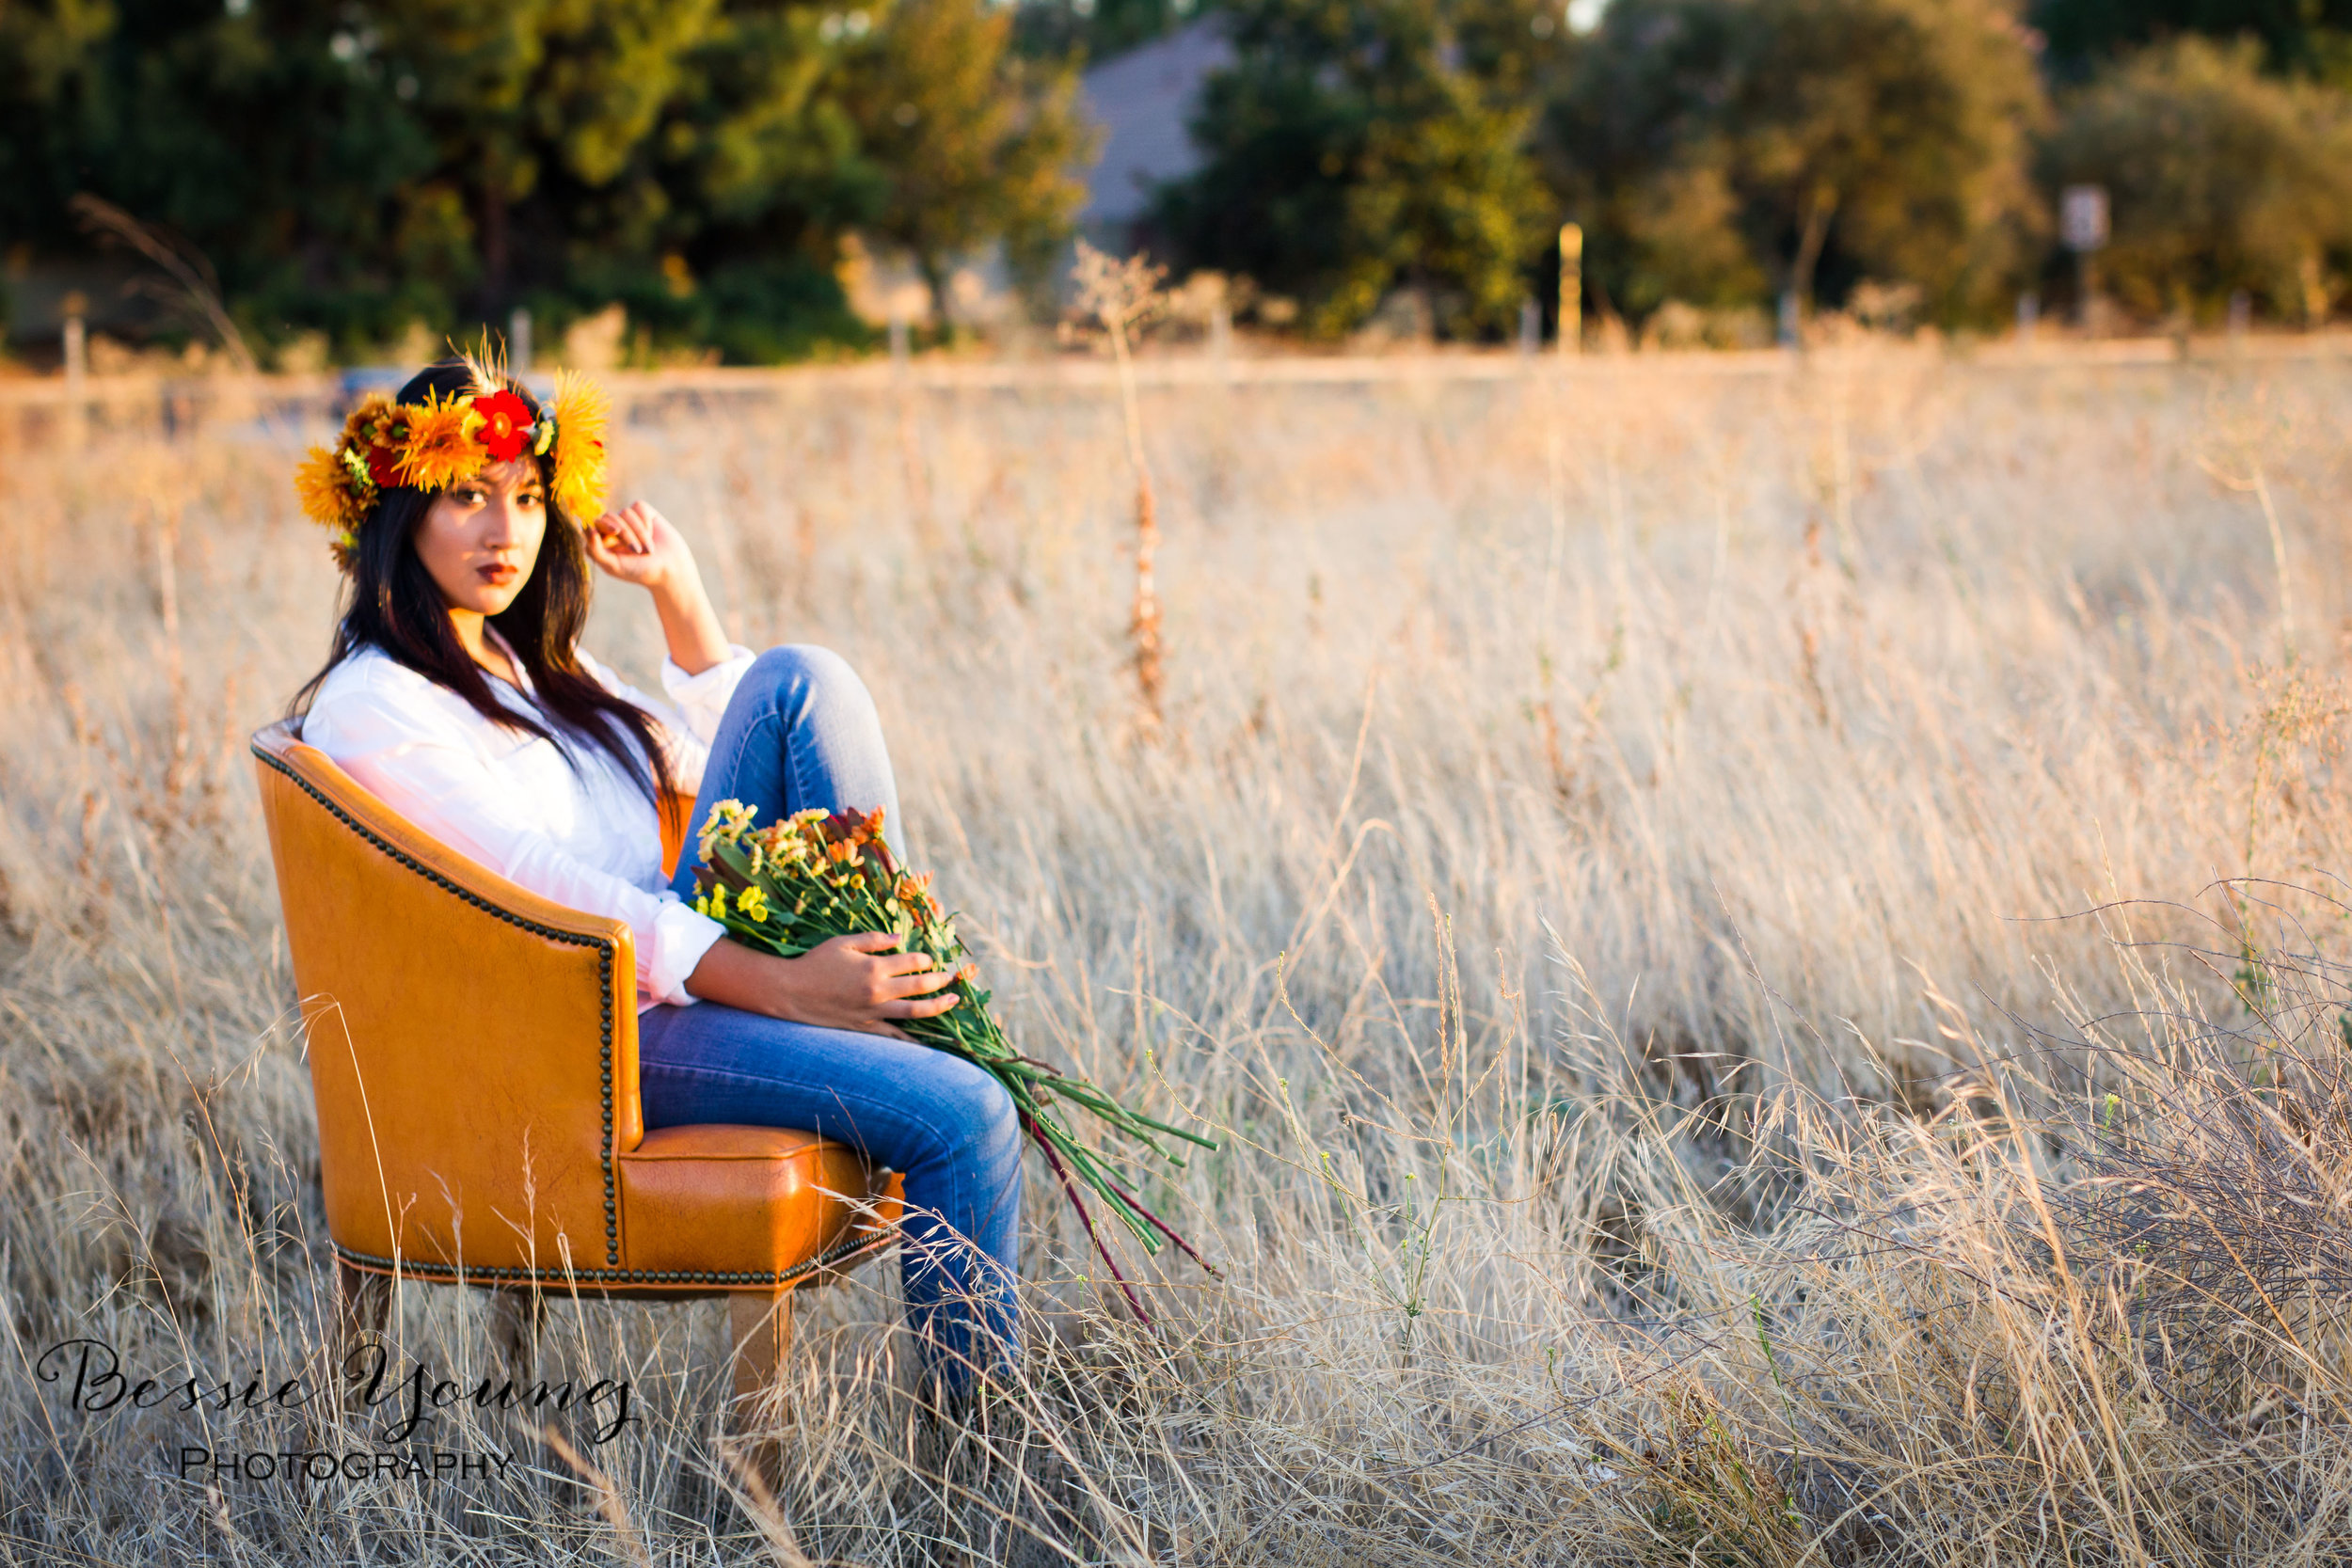 Woodward Park Portraits - Vargas - Bessie Young Photography-35.jpg